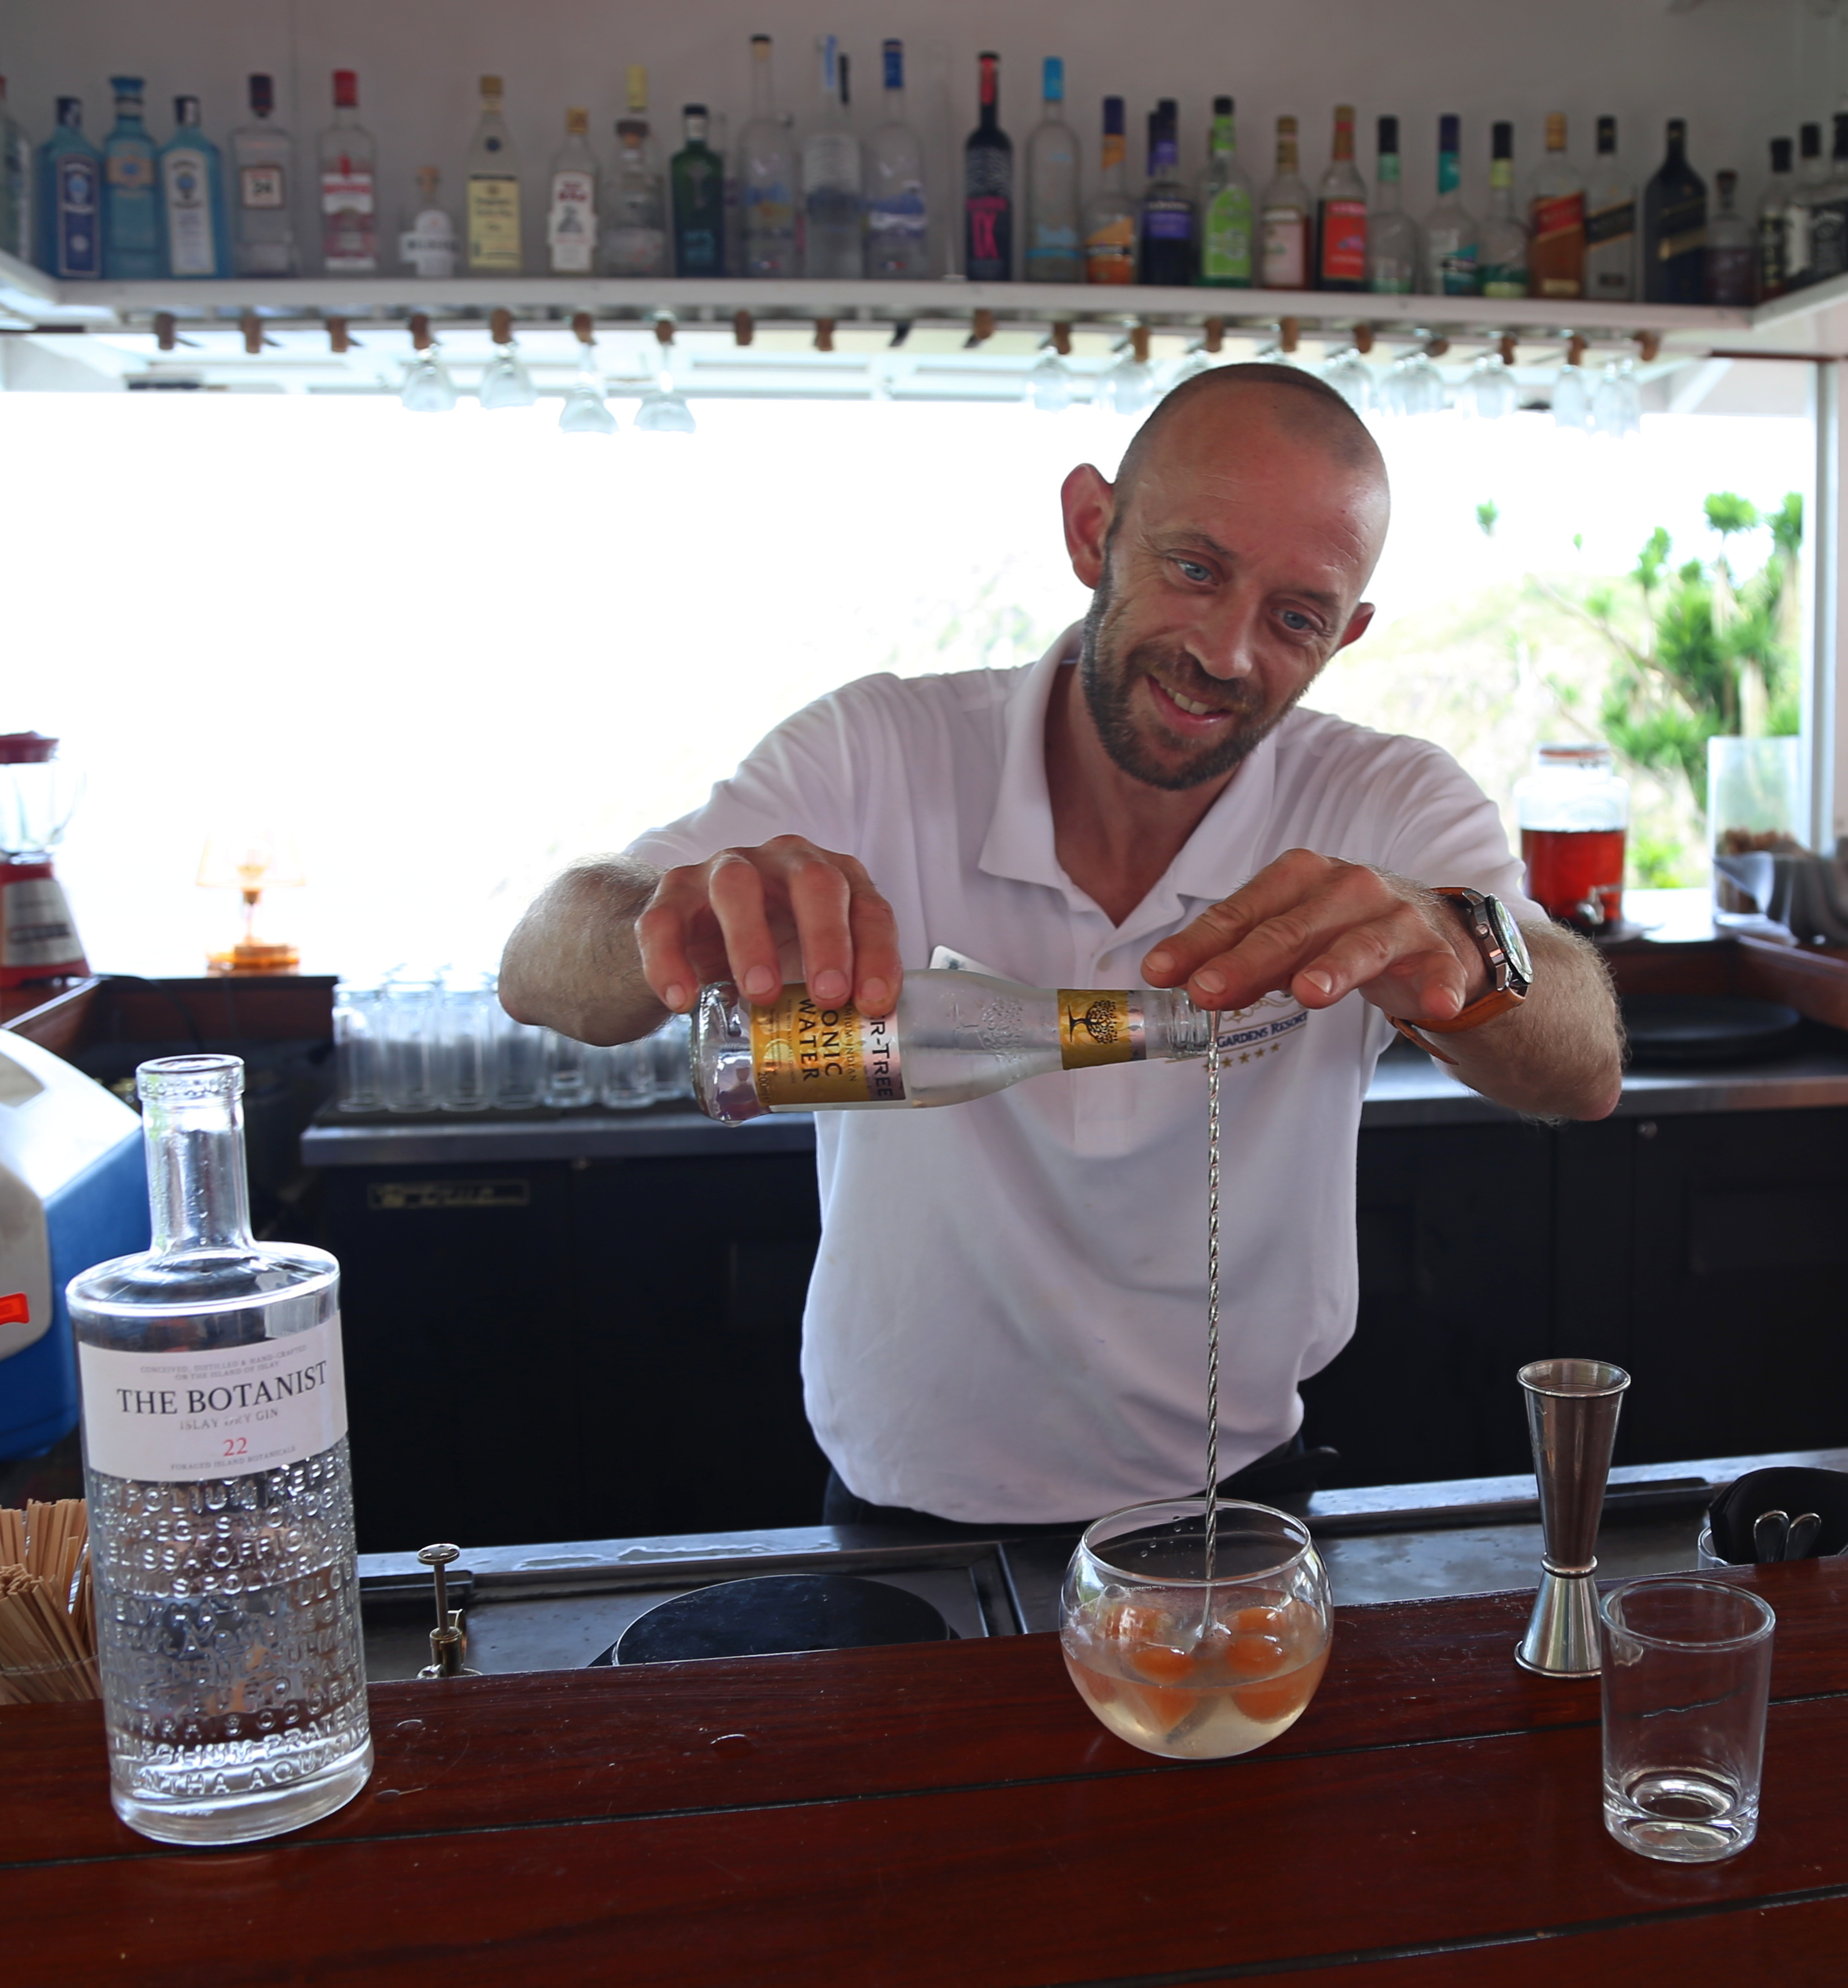 Duco guided us through his exotic gin and tonic creations